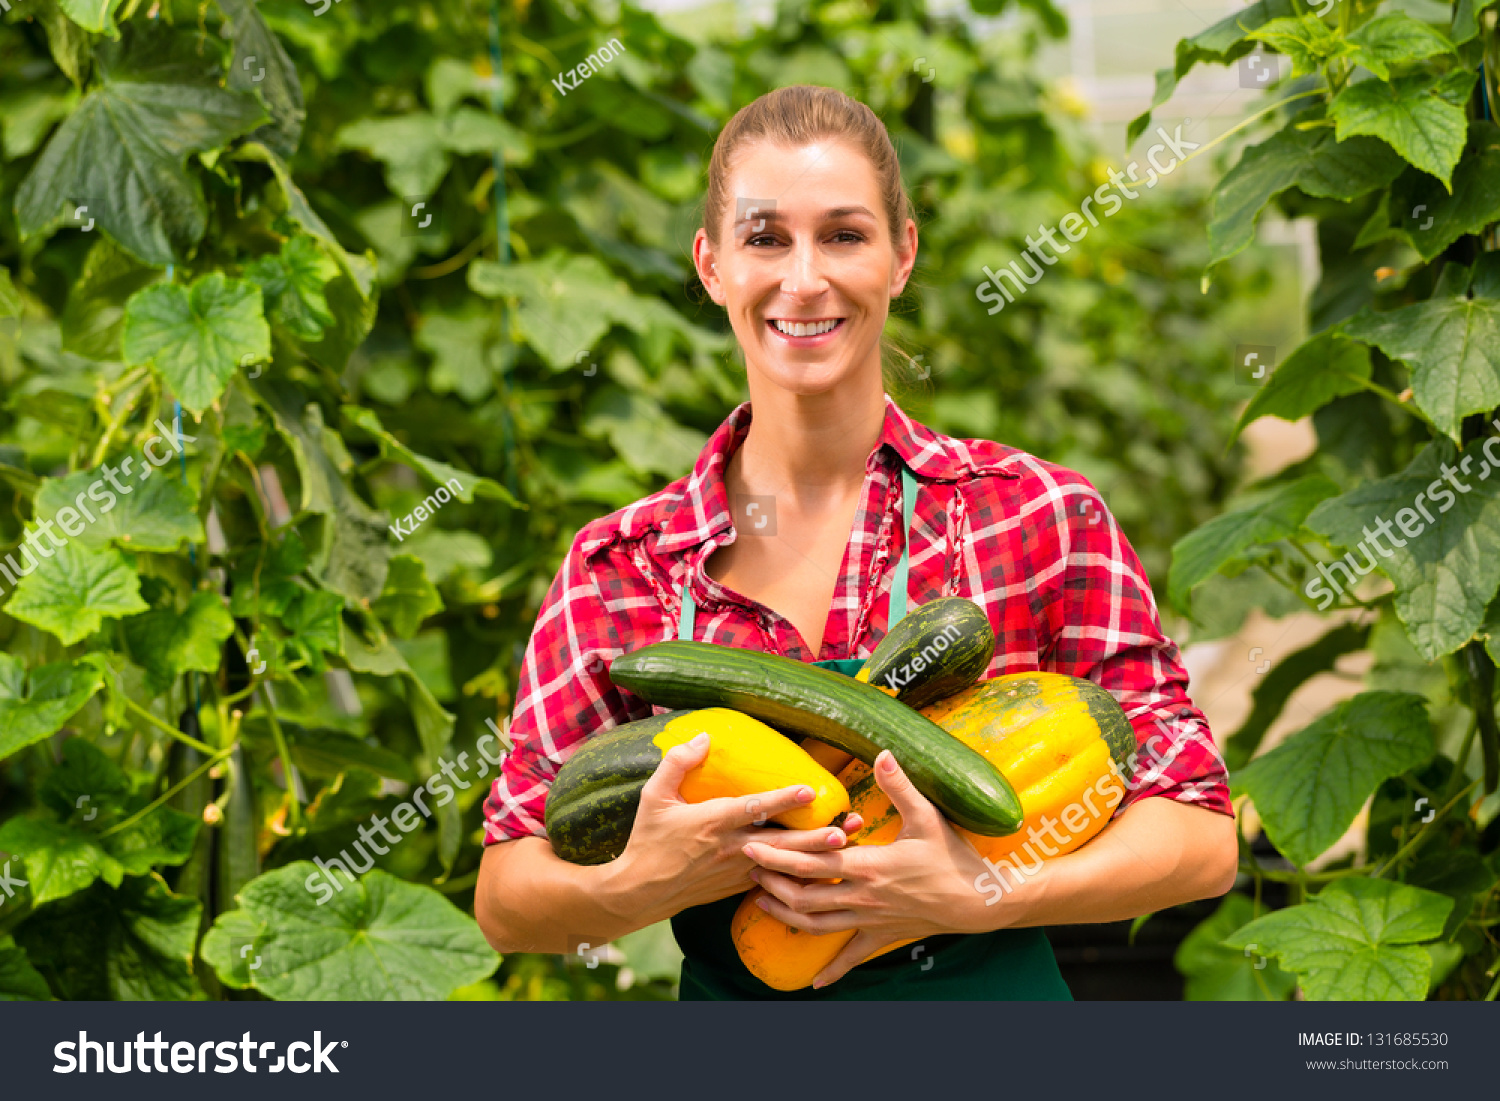 Female Gardener At Market Gardening Or Nursery With Apron And Vegetables